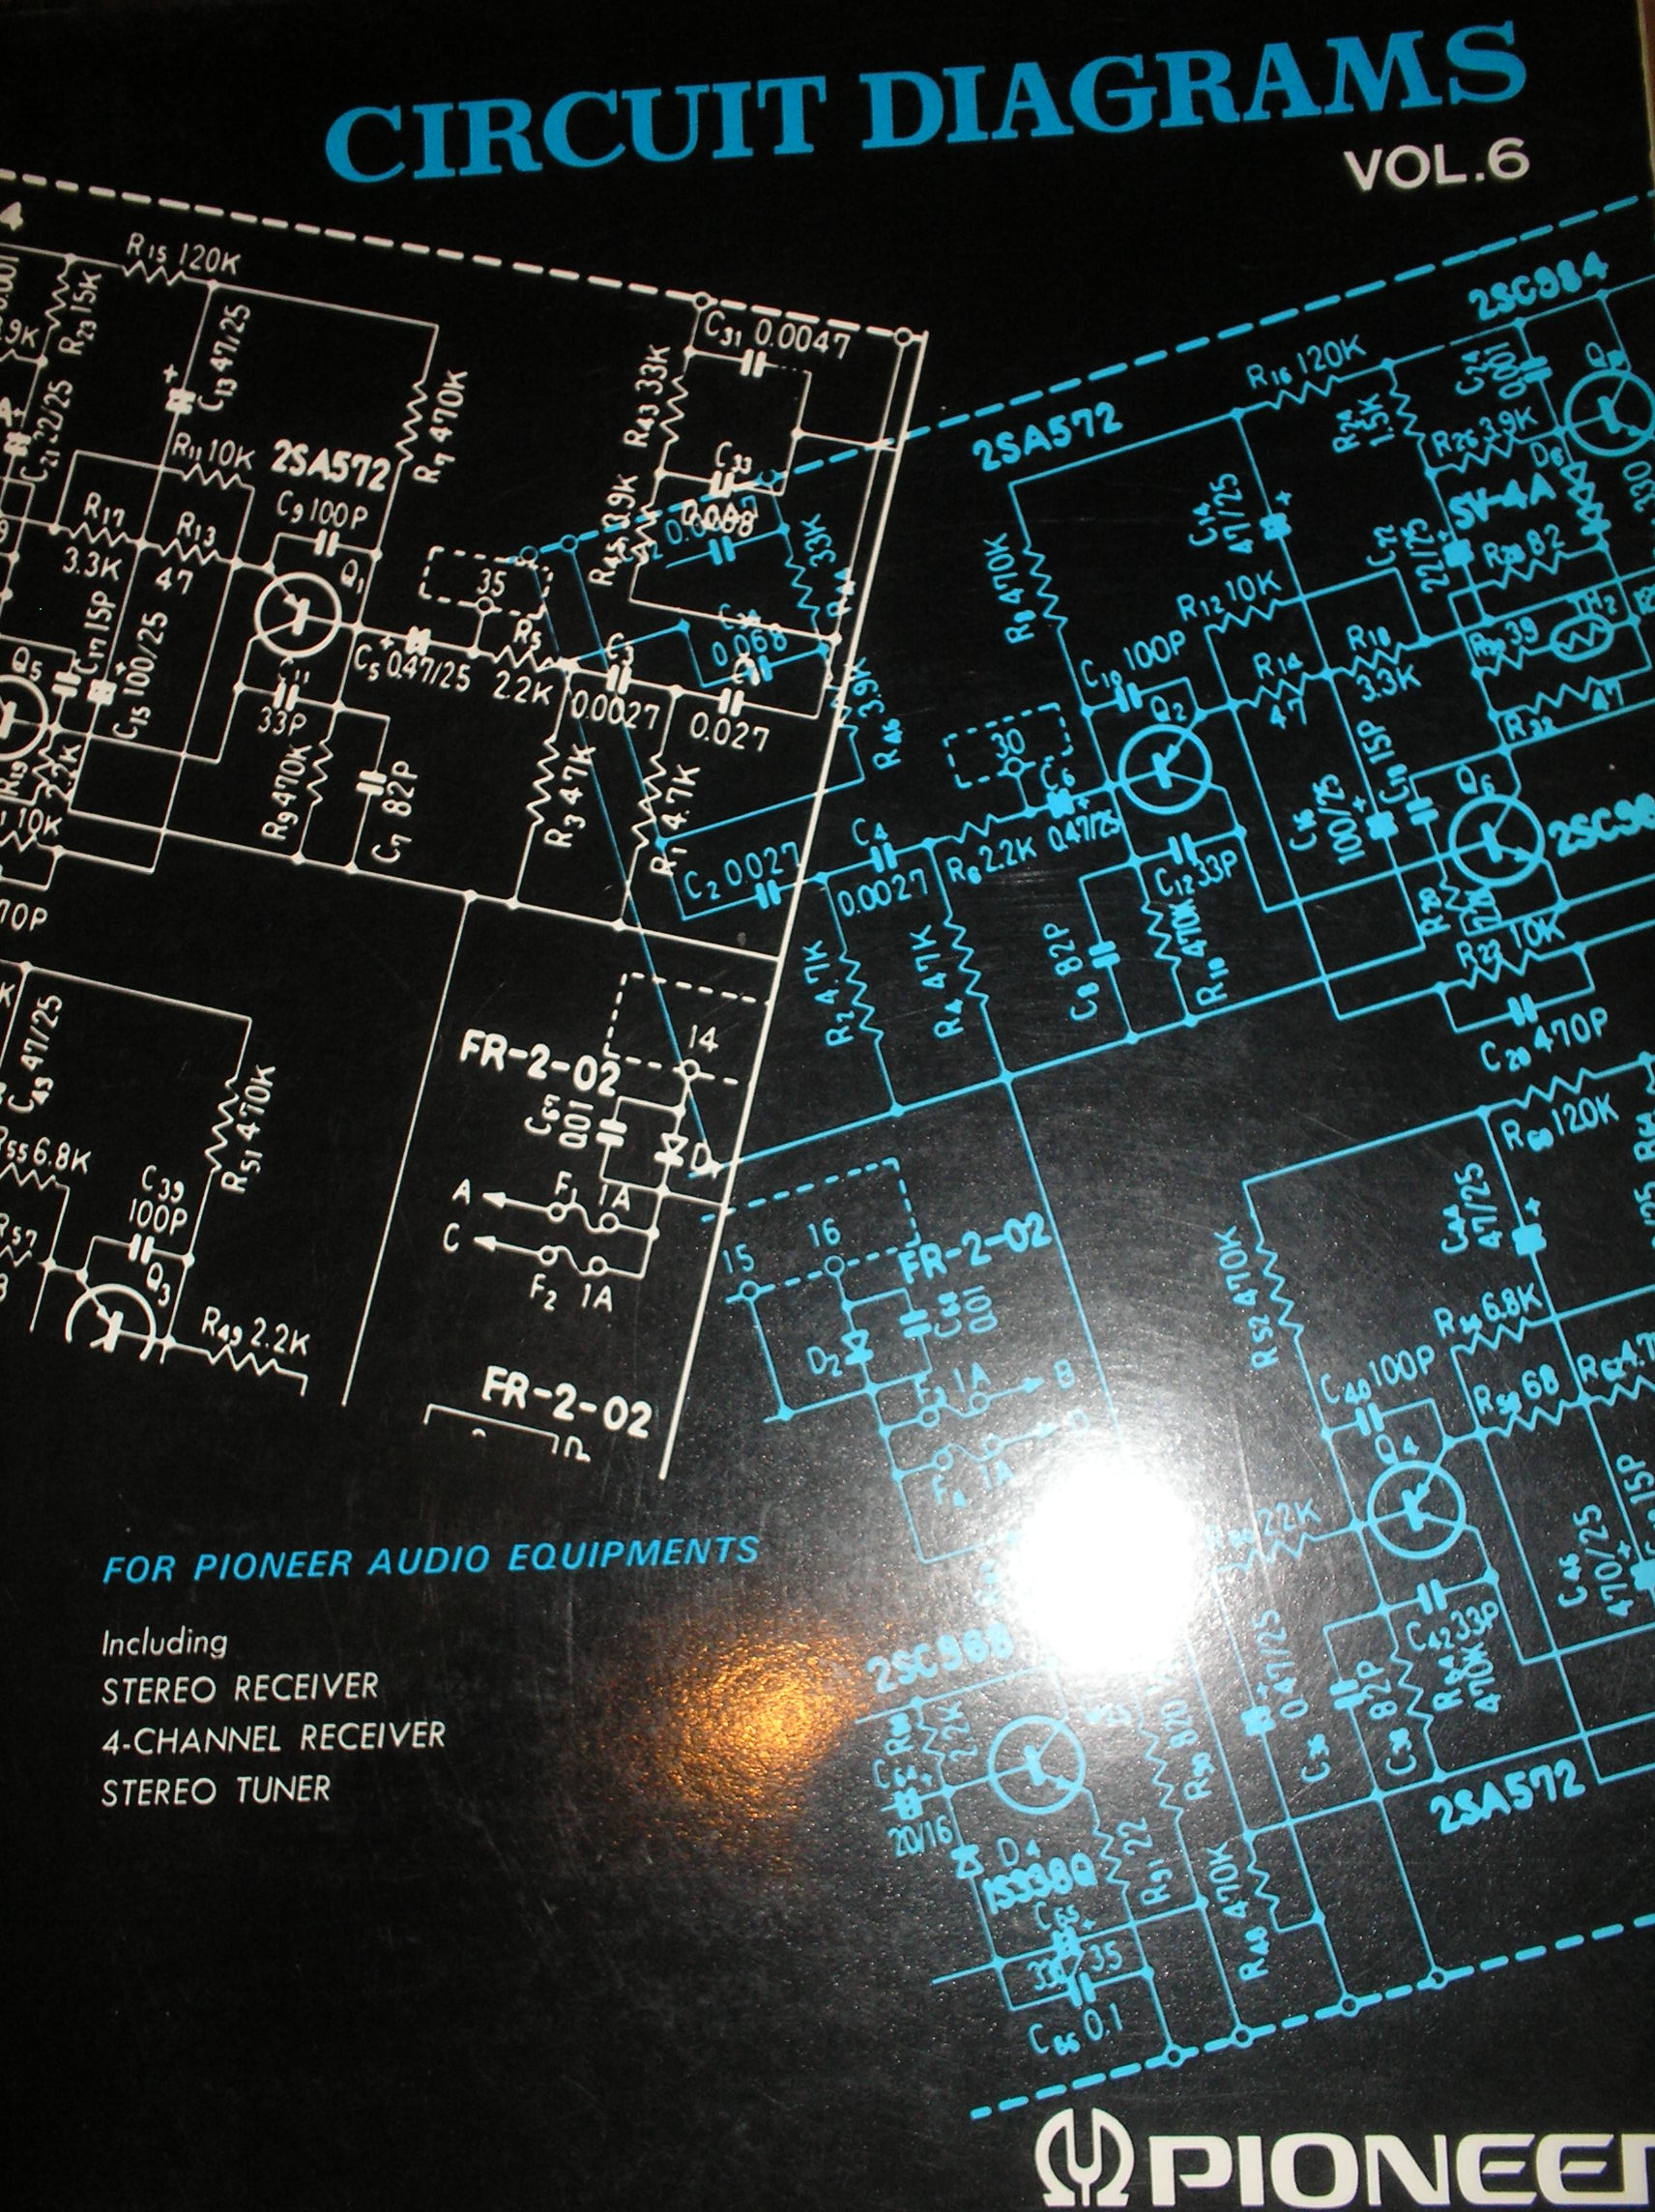 300 Stereo Receiver fold out schematics.   Book 6